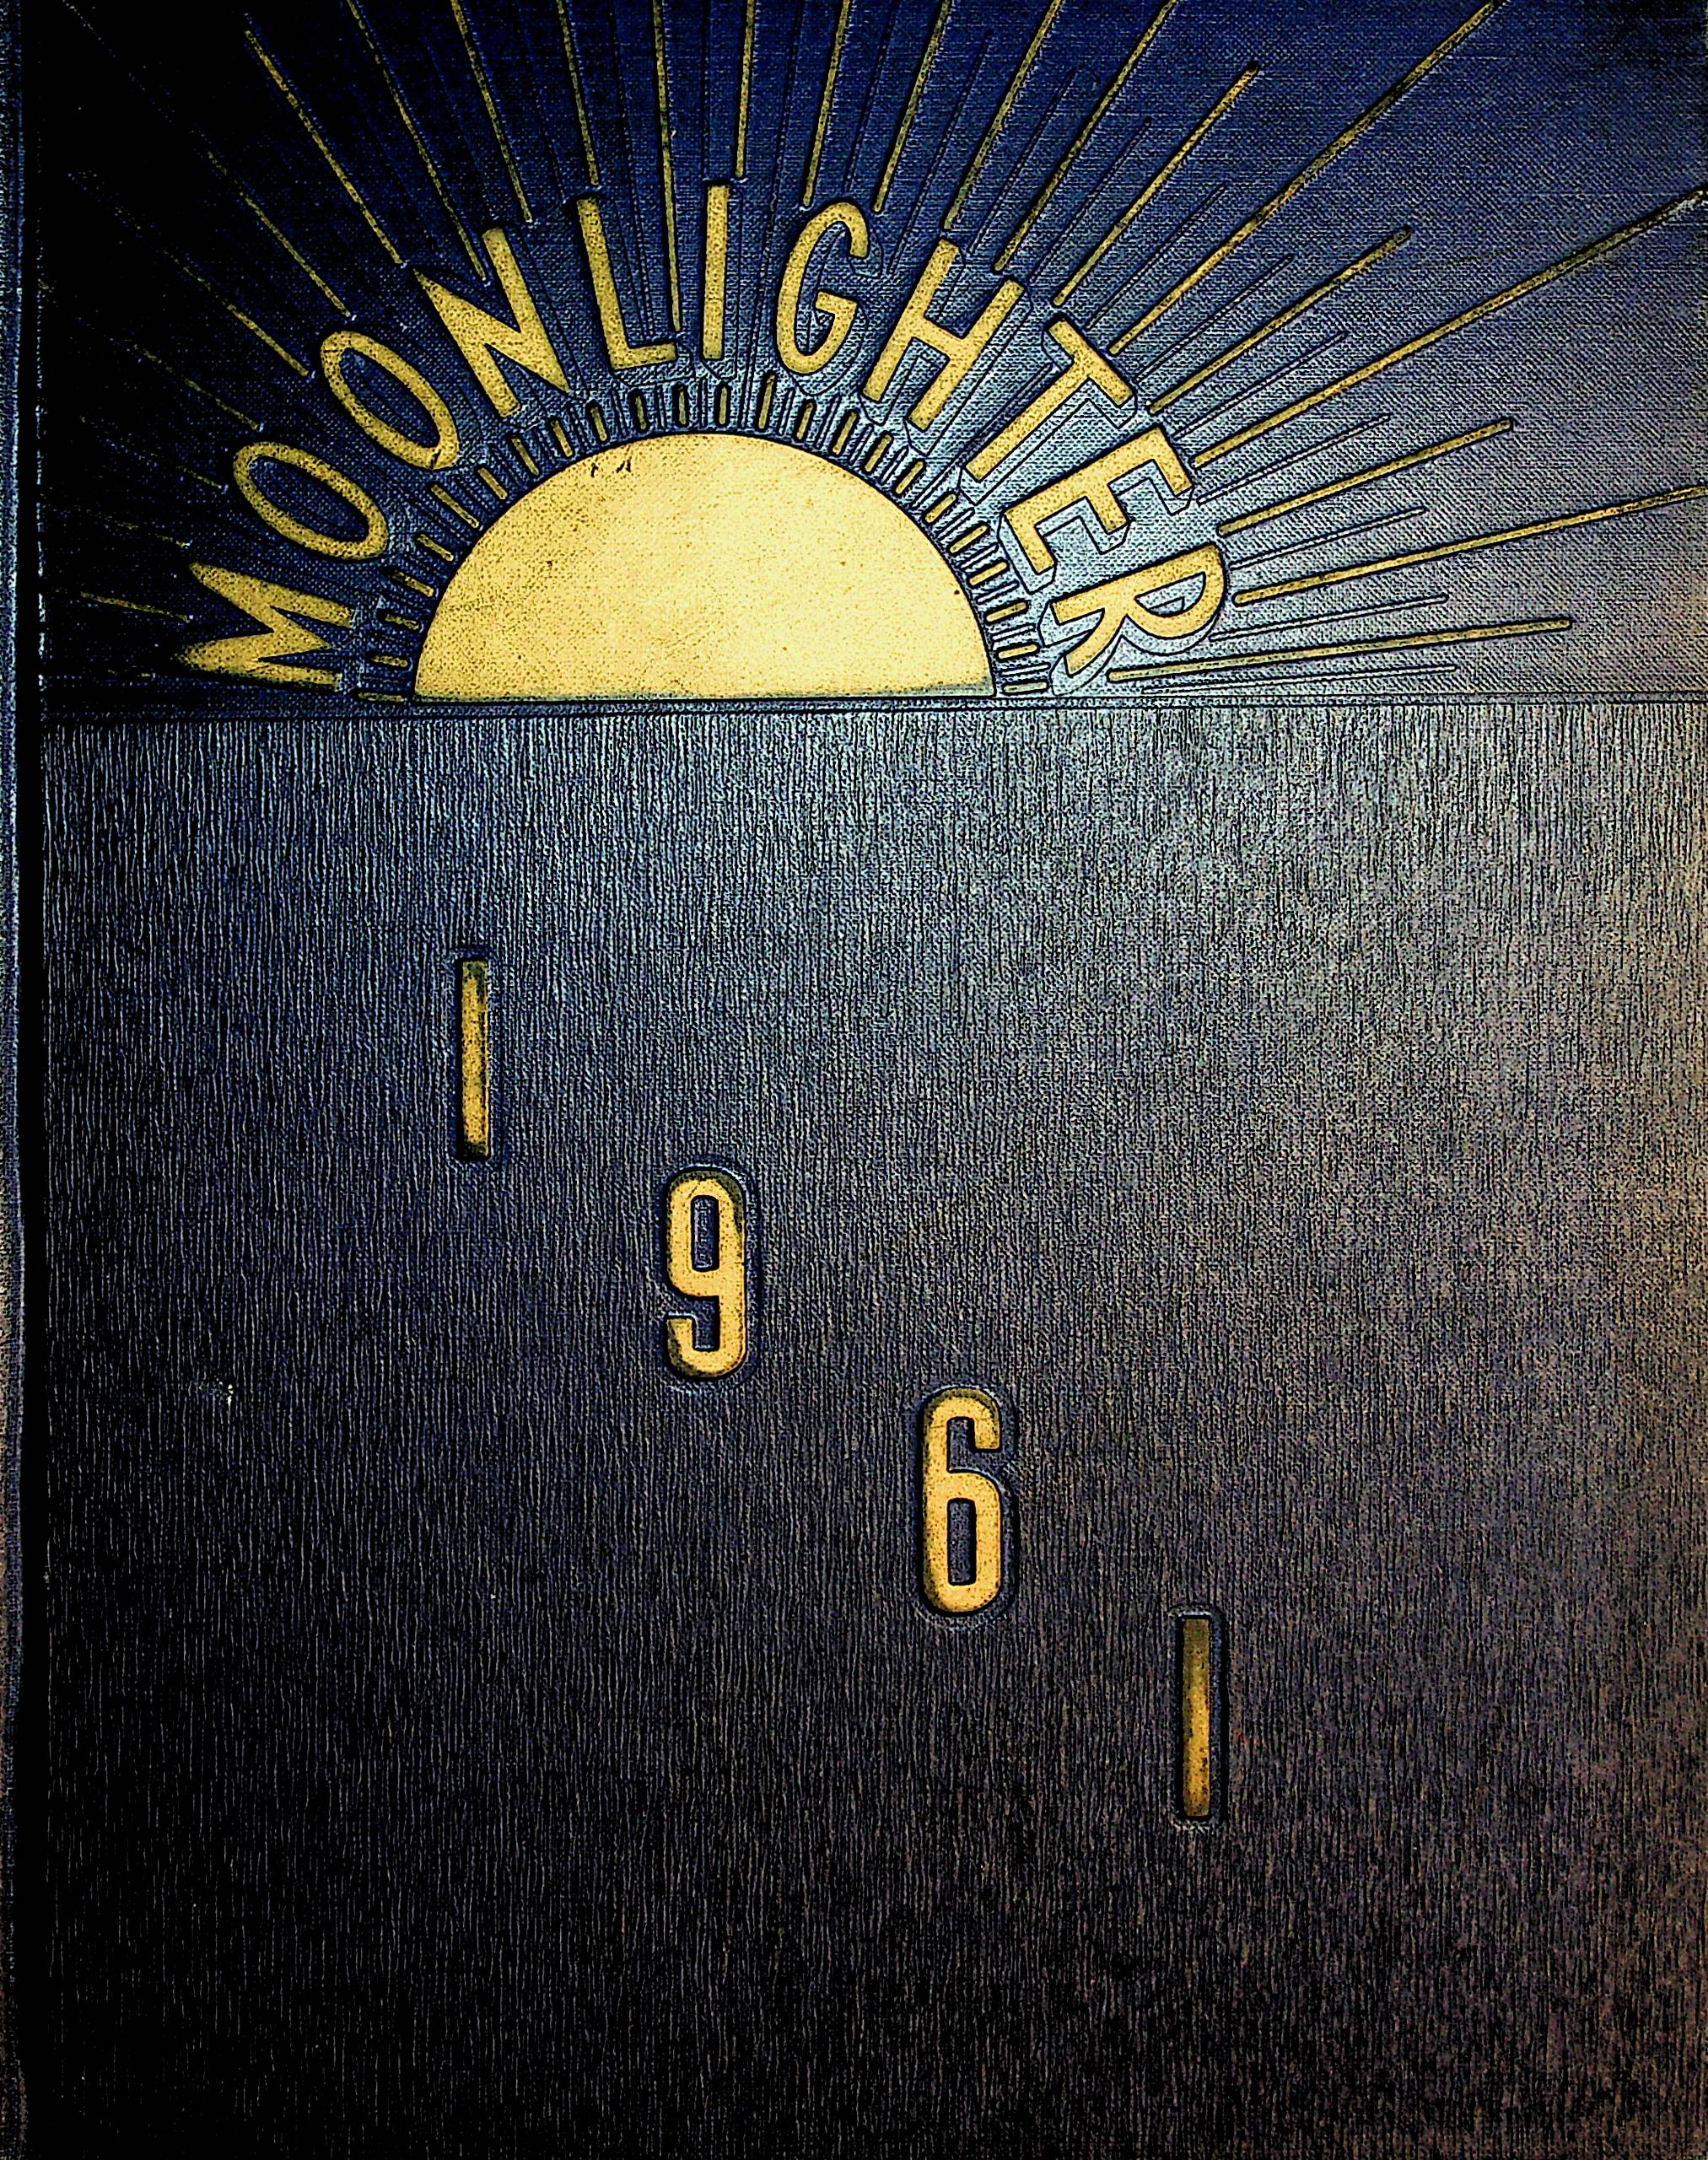 The Moonlighter